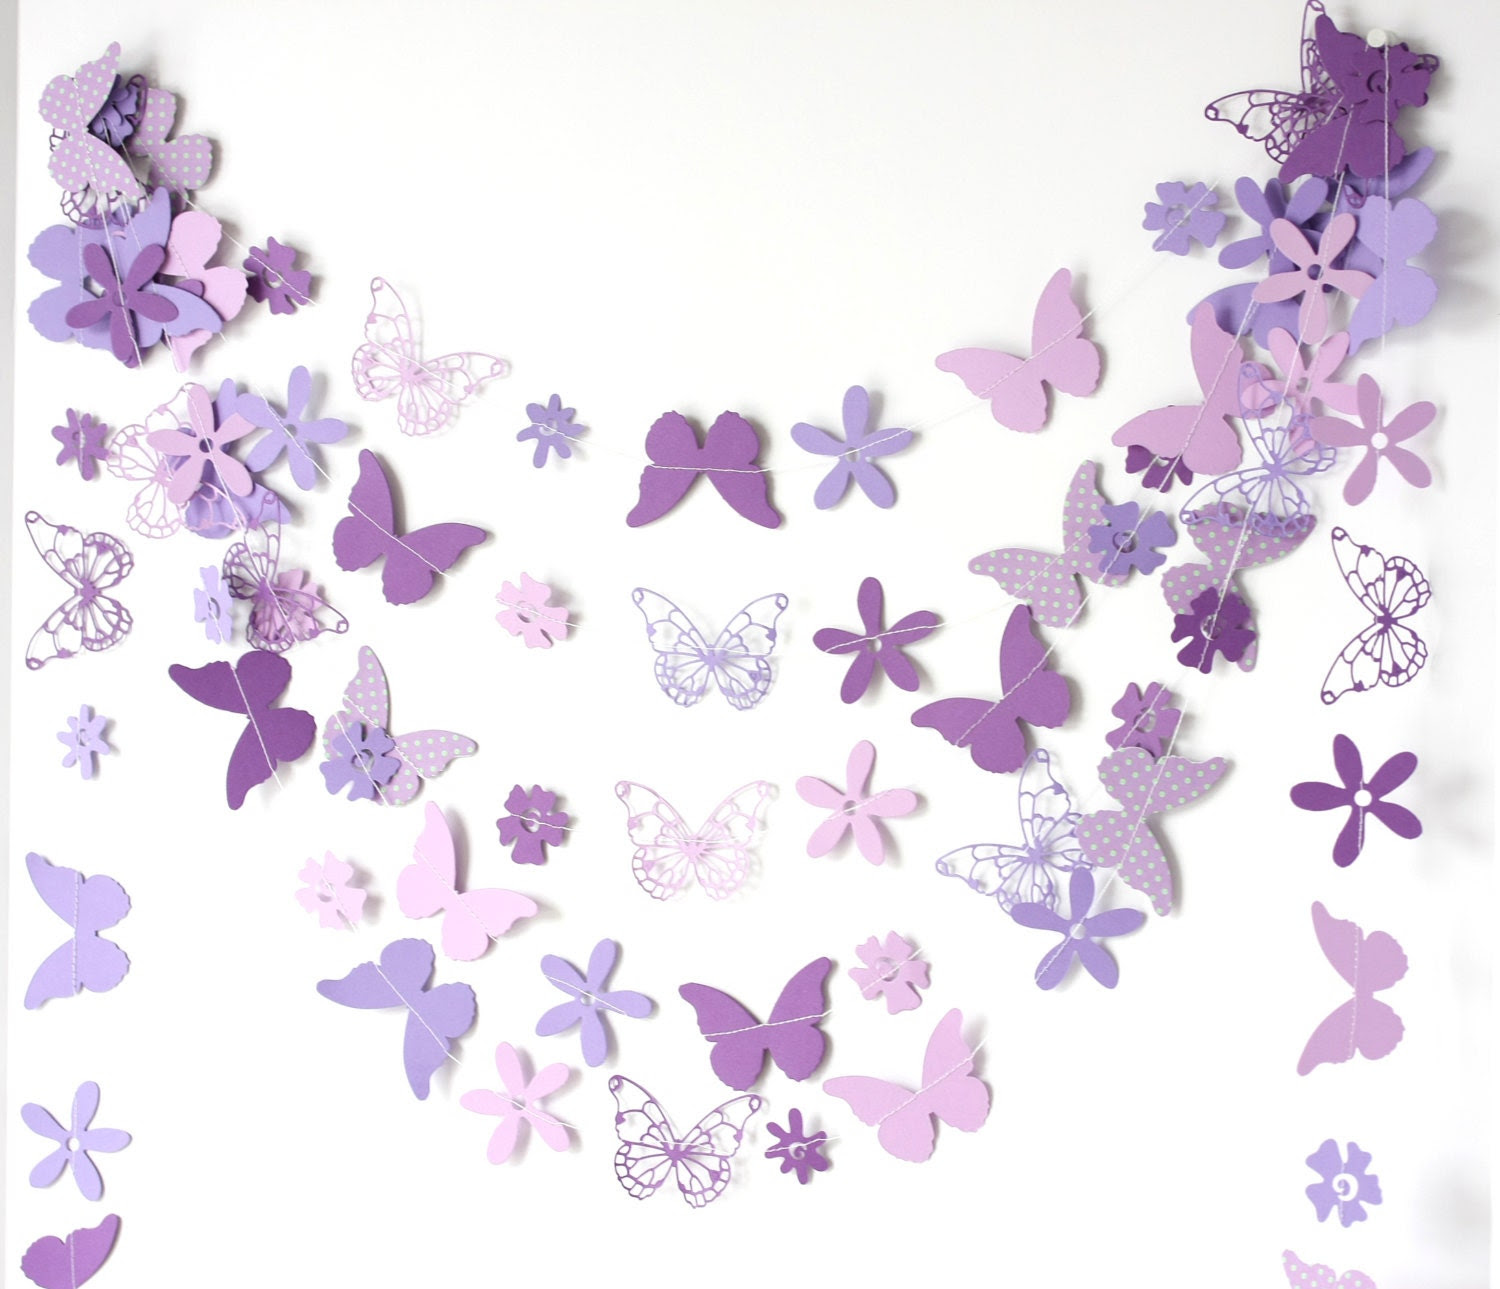 purple paper garland with flowers and butterflies birthday party  wedding easter bridal shower baby shower - ksenchik30